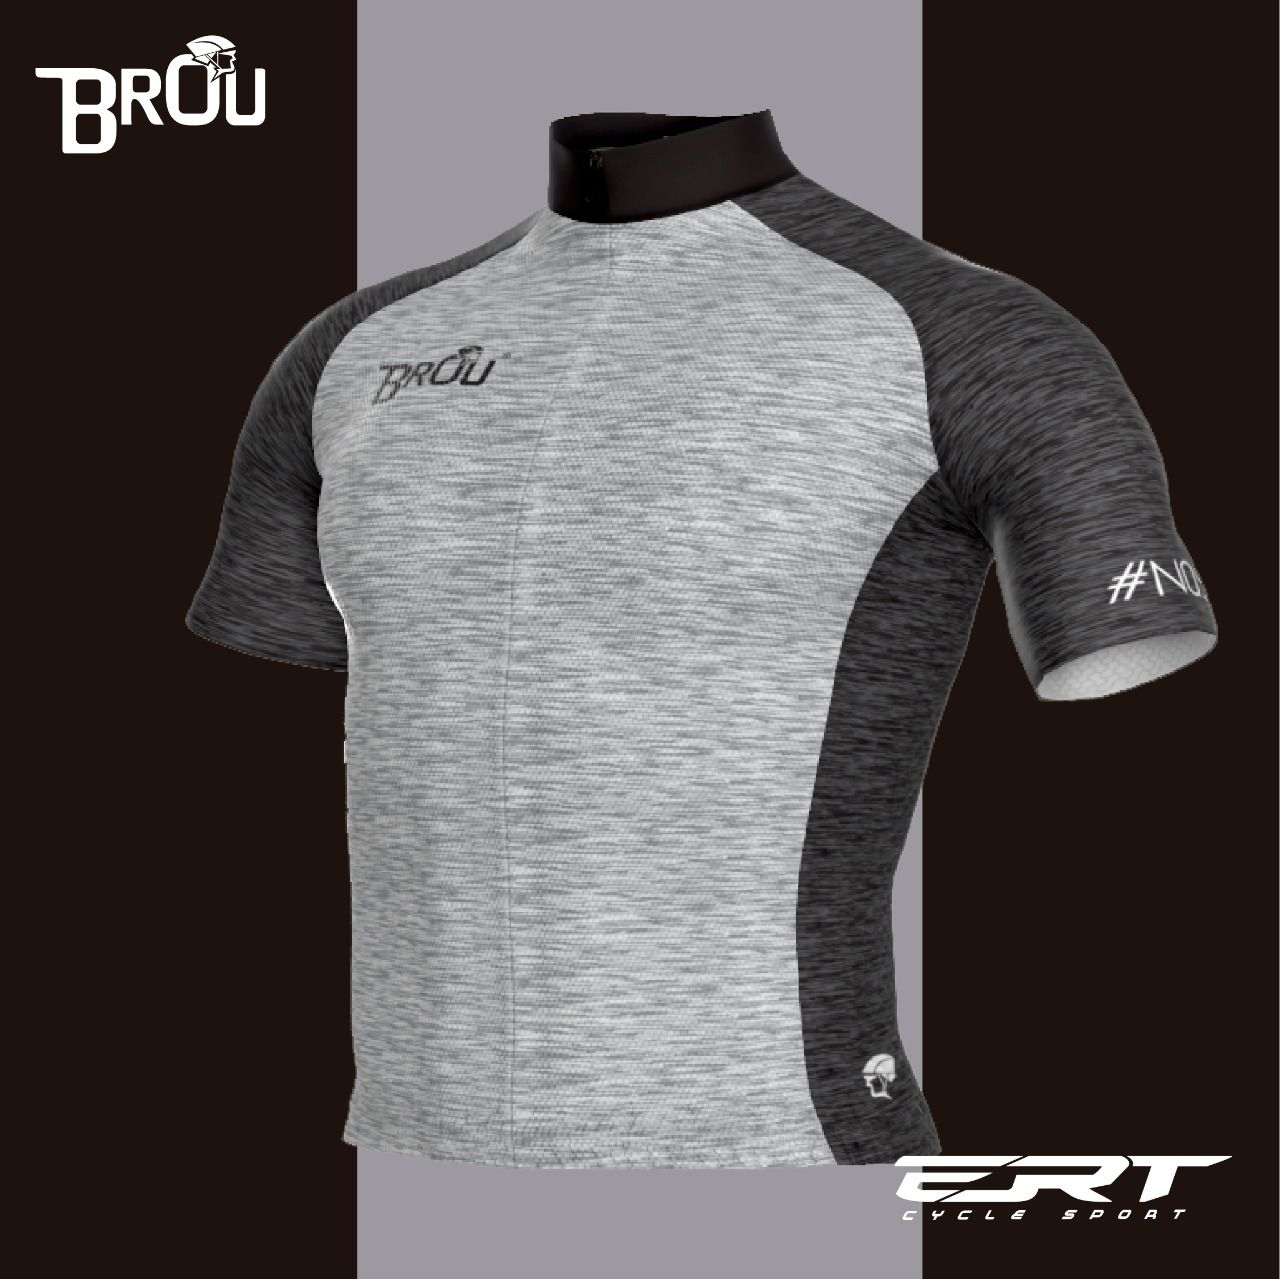 Camisa Brou New Steel